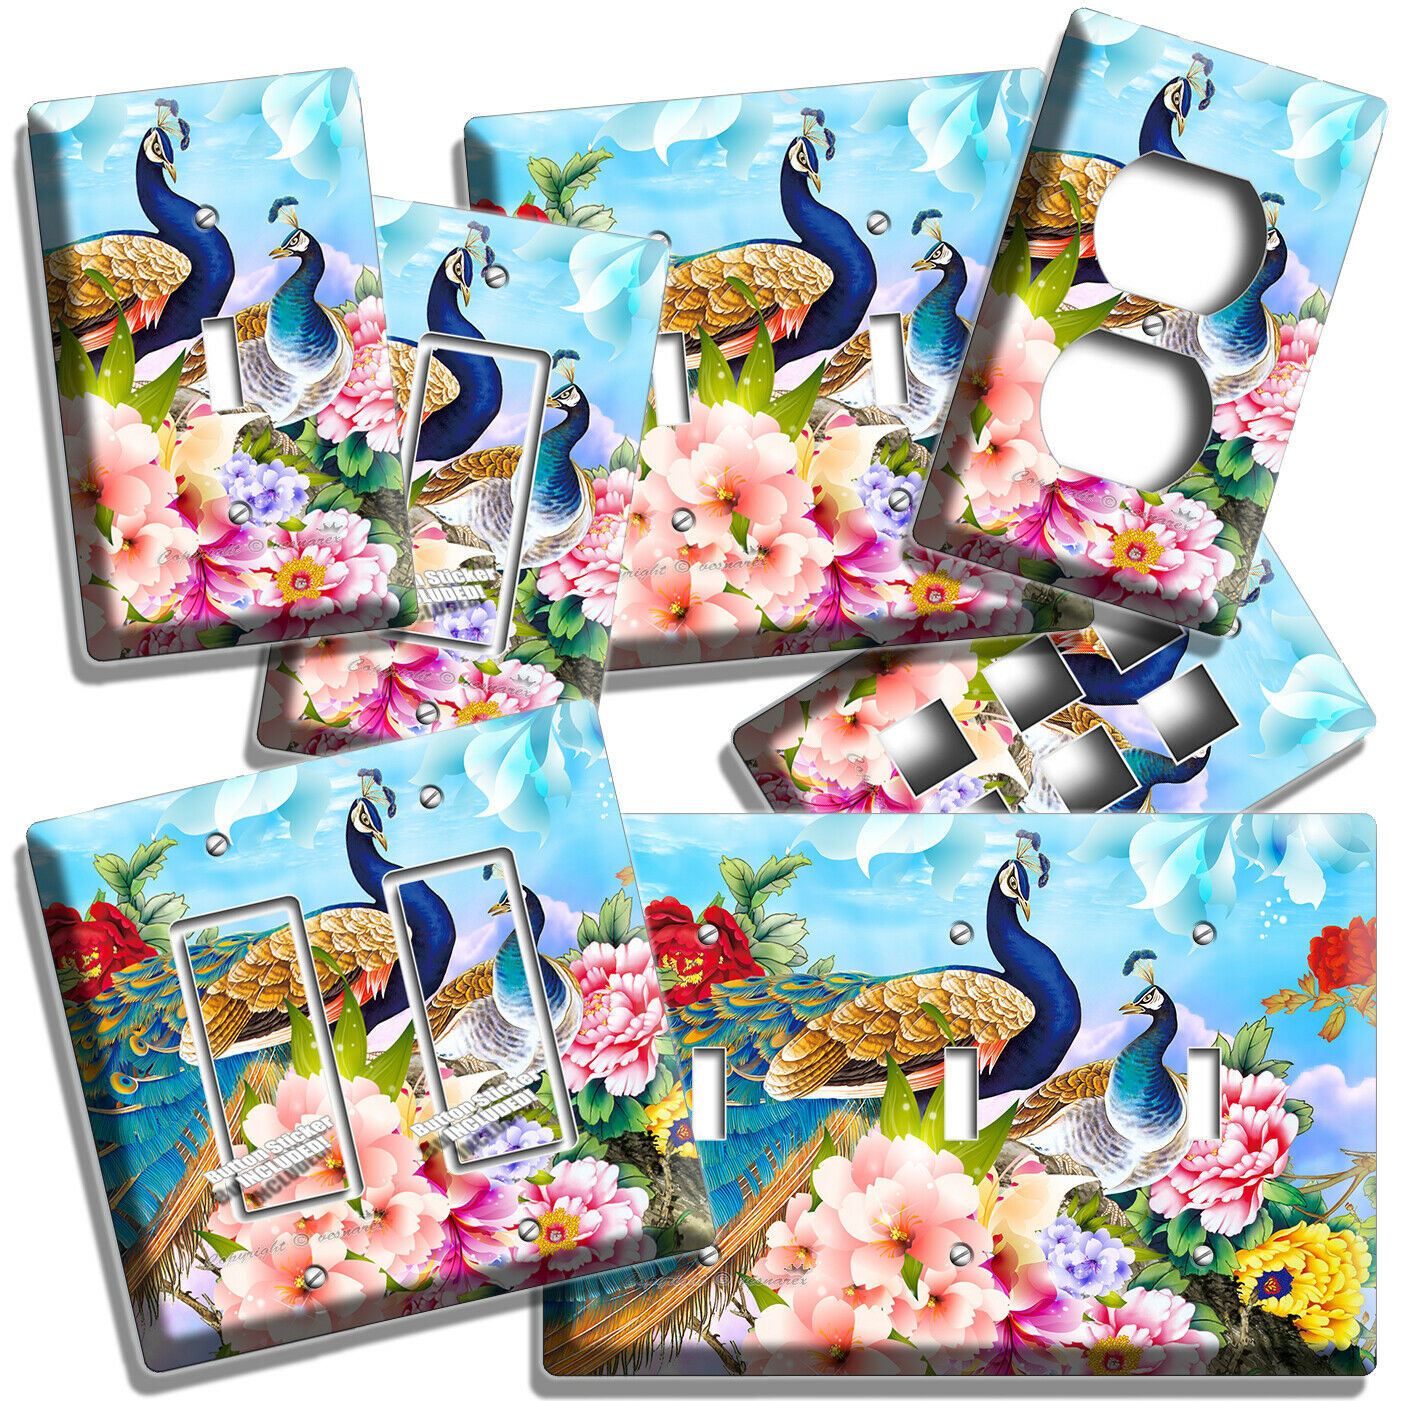 CHINESE PEACOCK BIRDS FLORAL COLORFUL LIGHT SWITCH OUTLET WALL PLATES ROOM DECOR